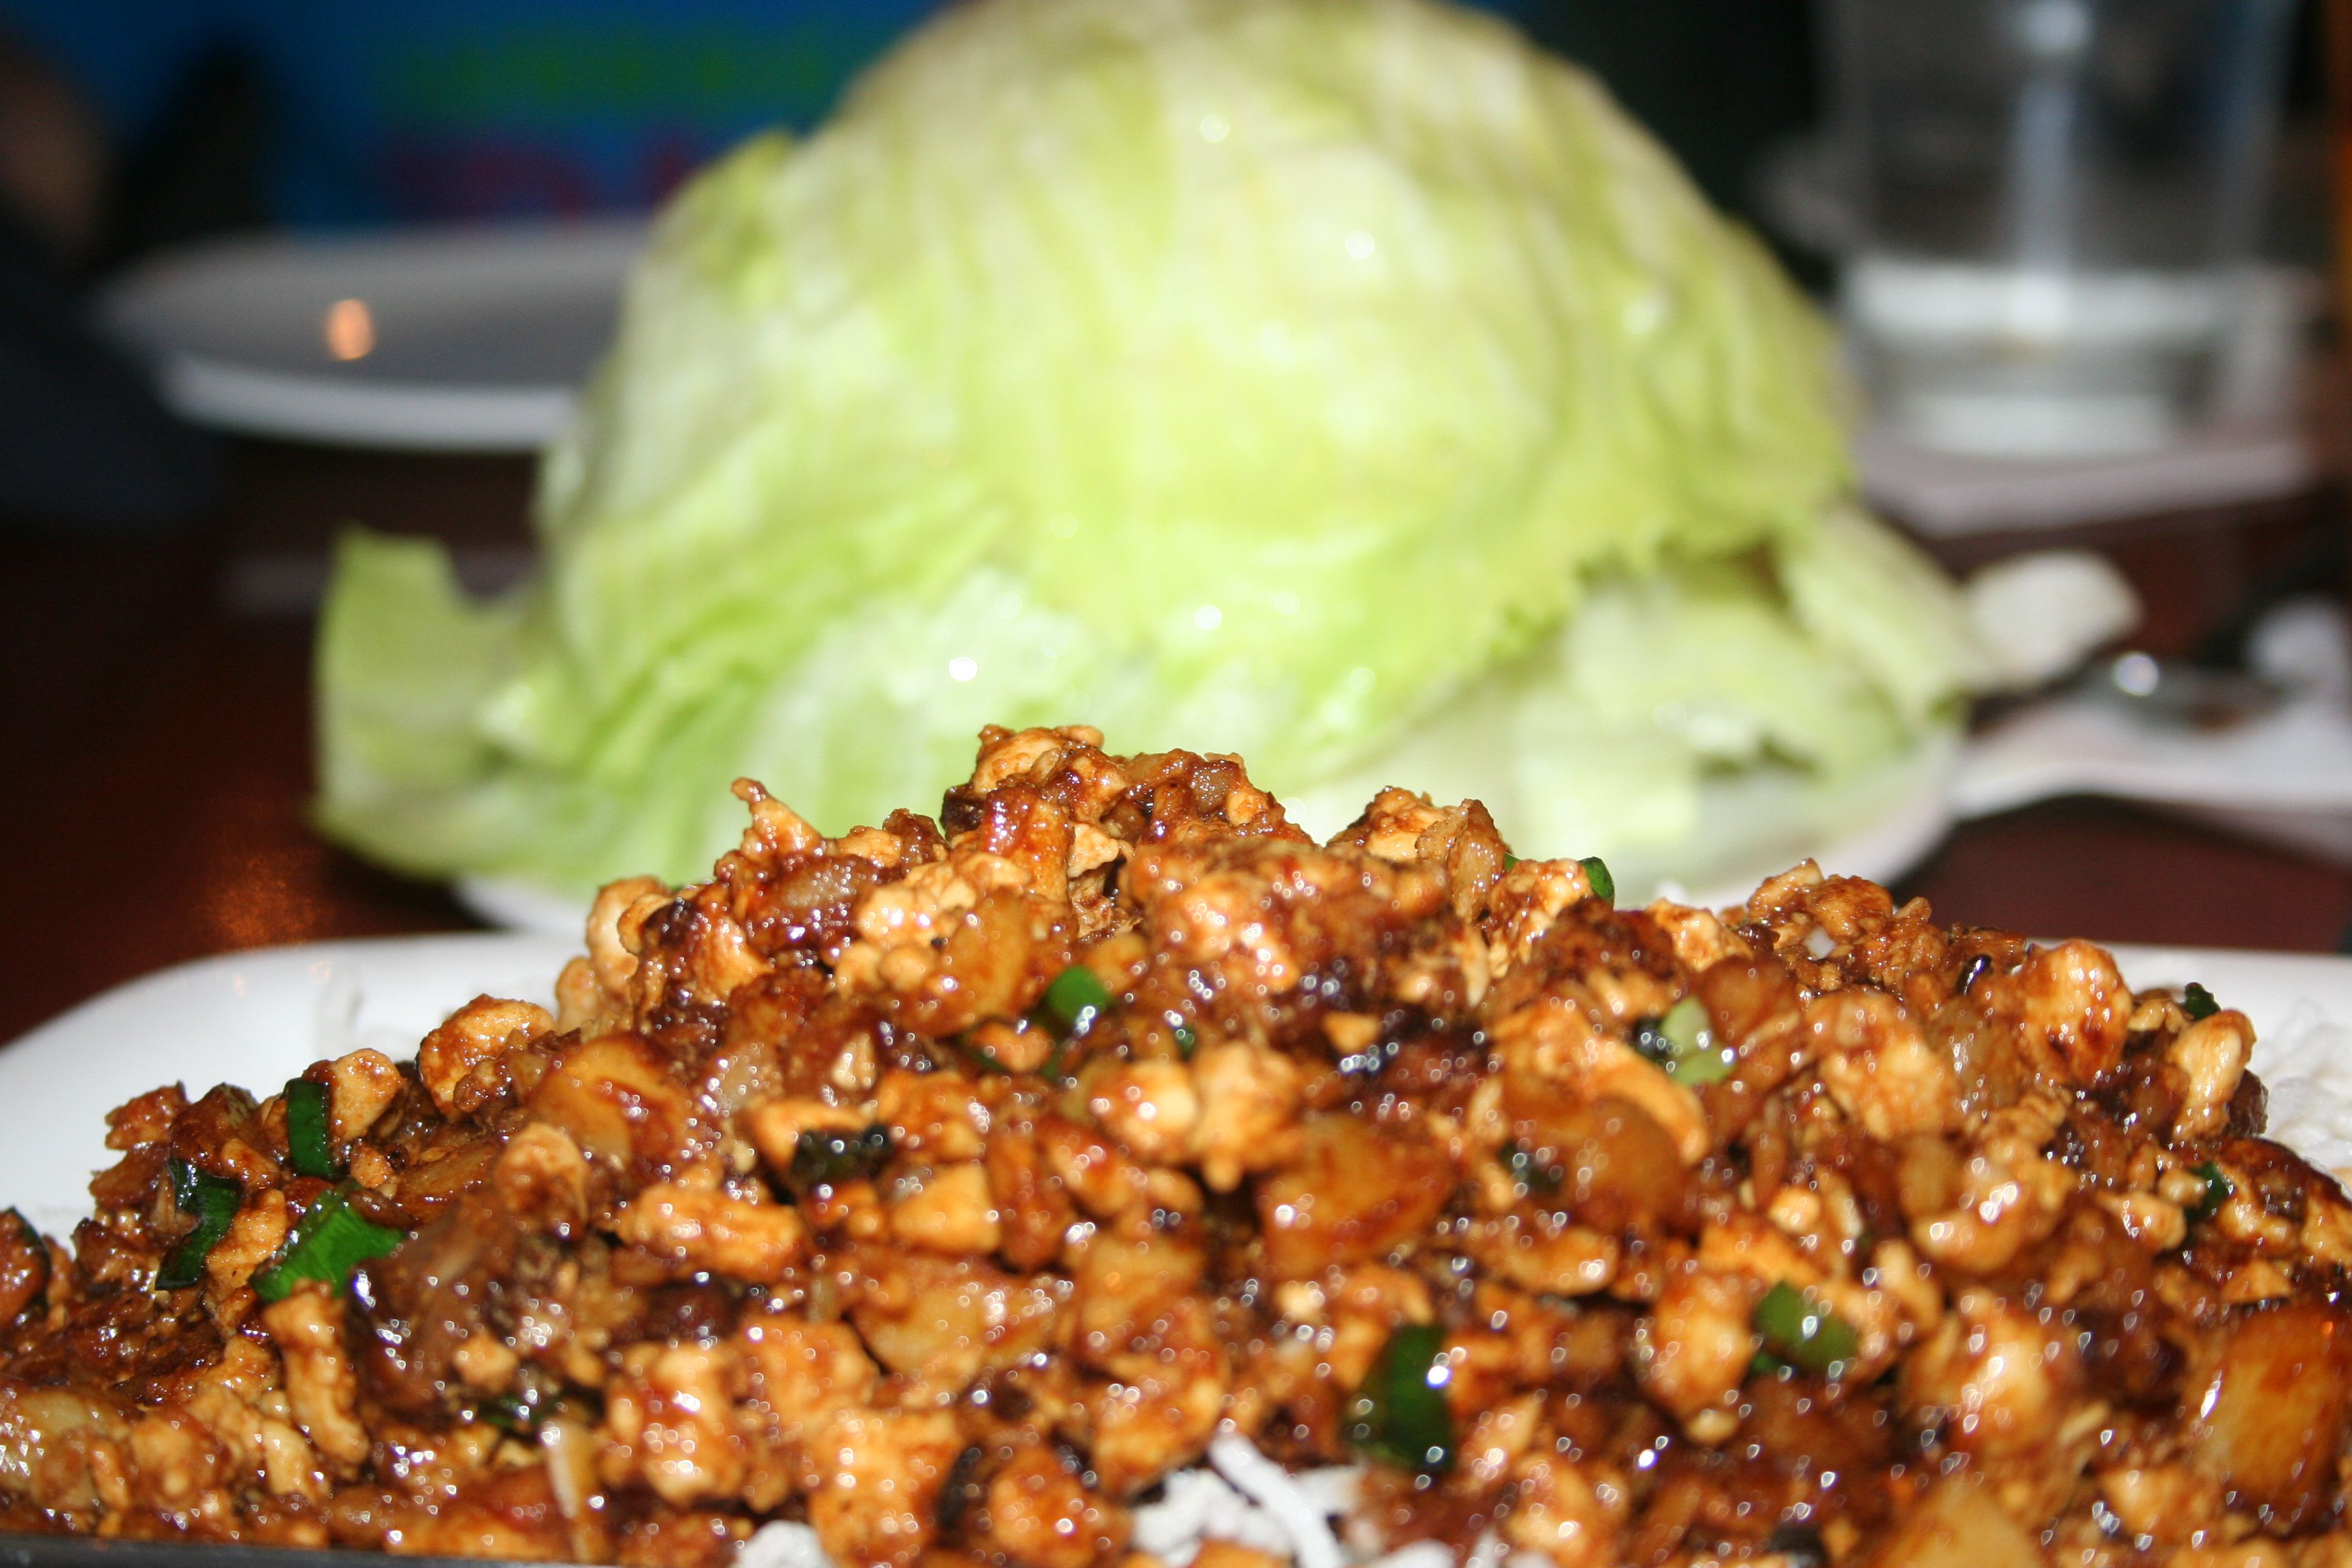 lettuce wraps at Pei Wei... irresistibly good. Copykat